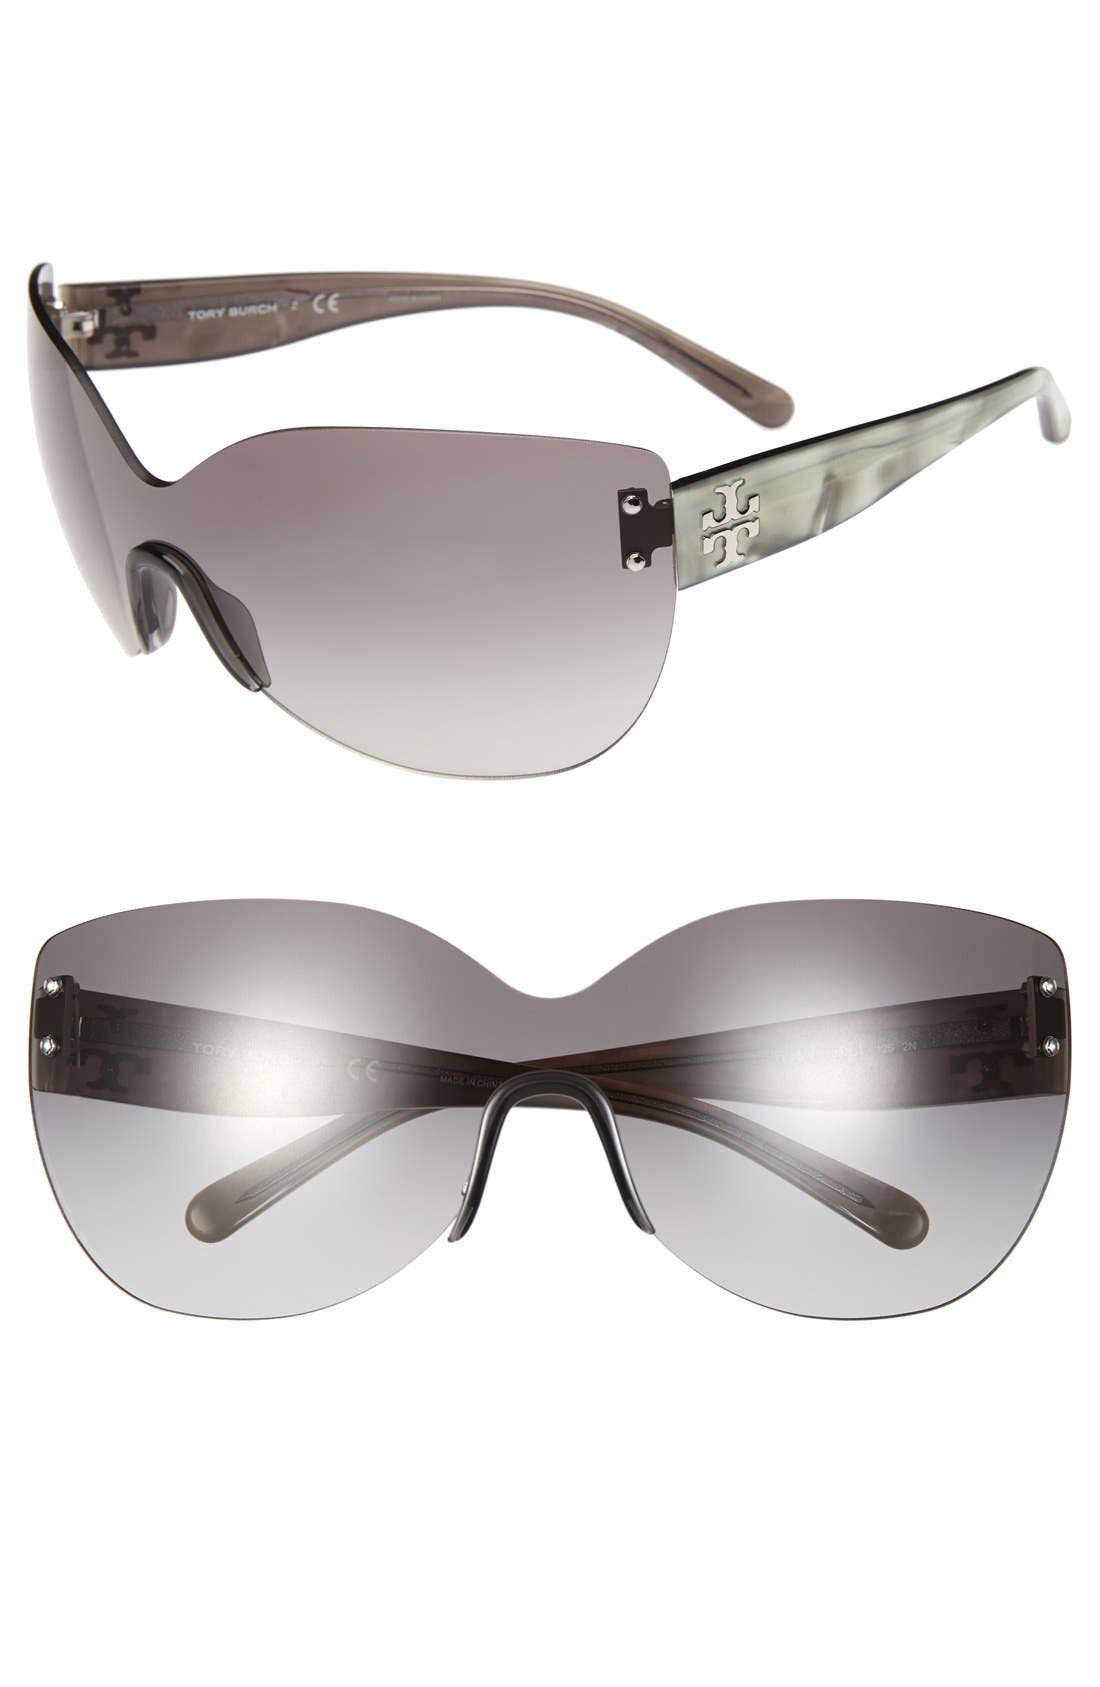 Main Image - Tory Burch 'Pilot' 70mm Wrap Sunglasses